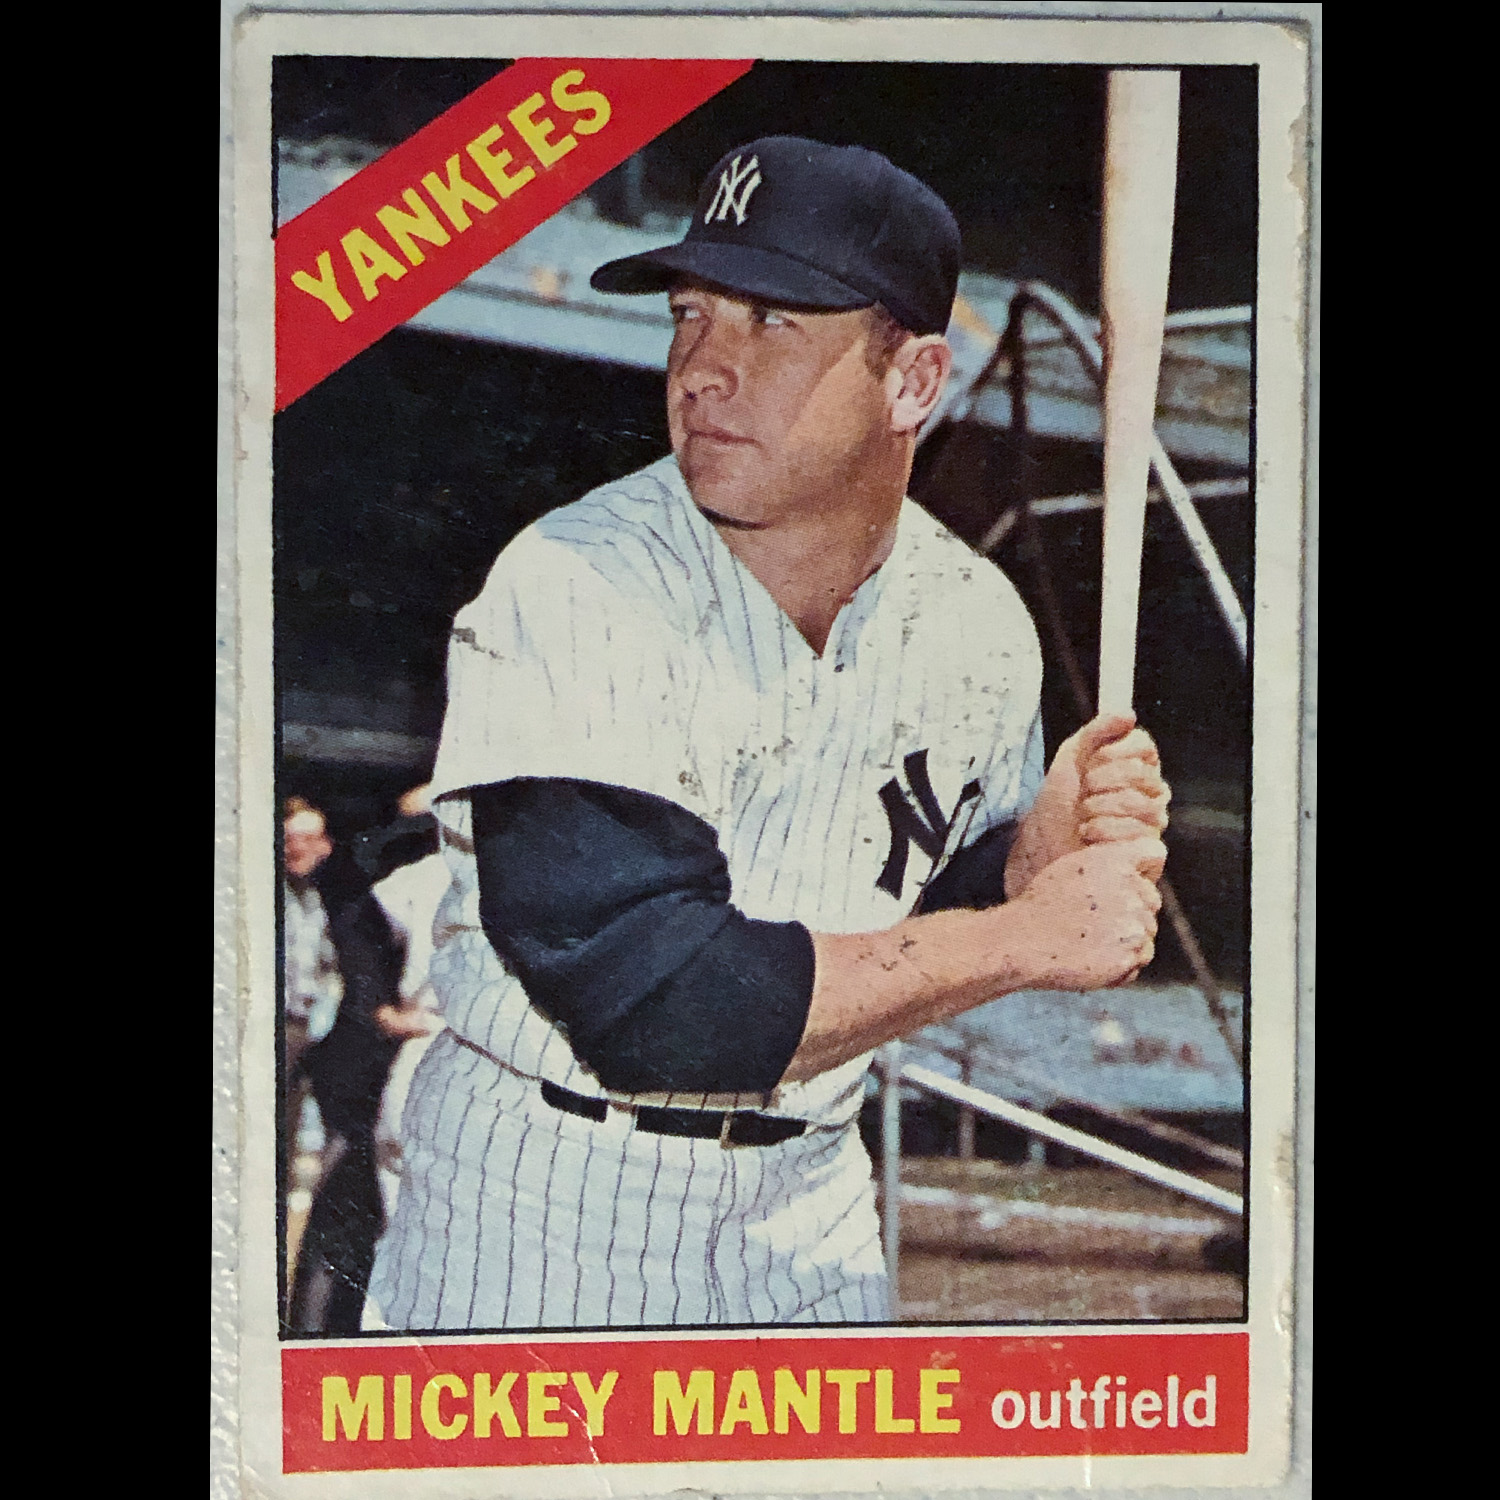 A baseball legend, love the fact no one cared about the background with the batting cages in this image.